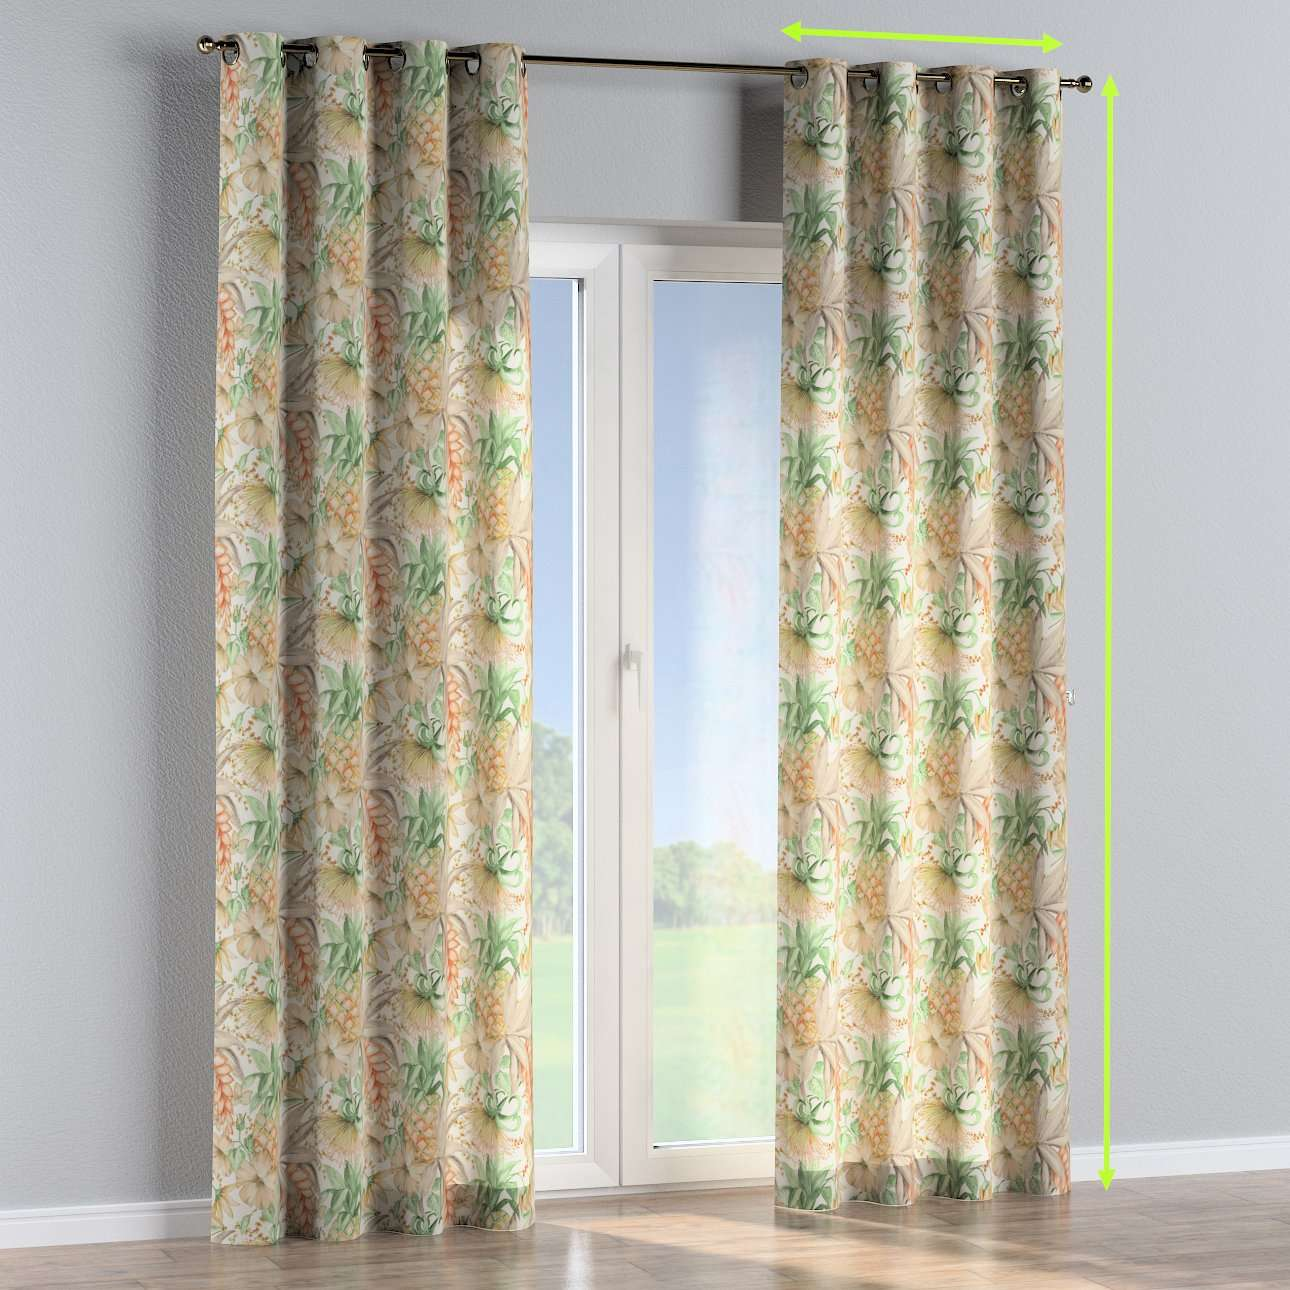 Eyelet lined curtains in collection Urban Jungle, fabric: 141-61